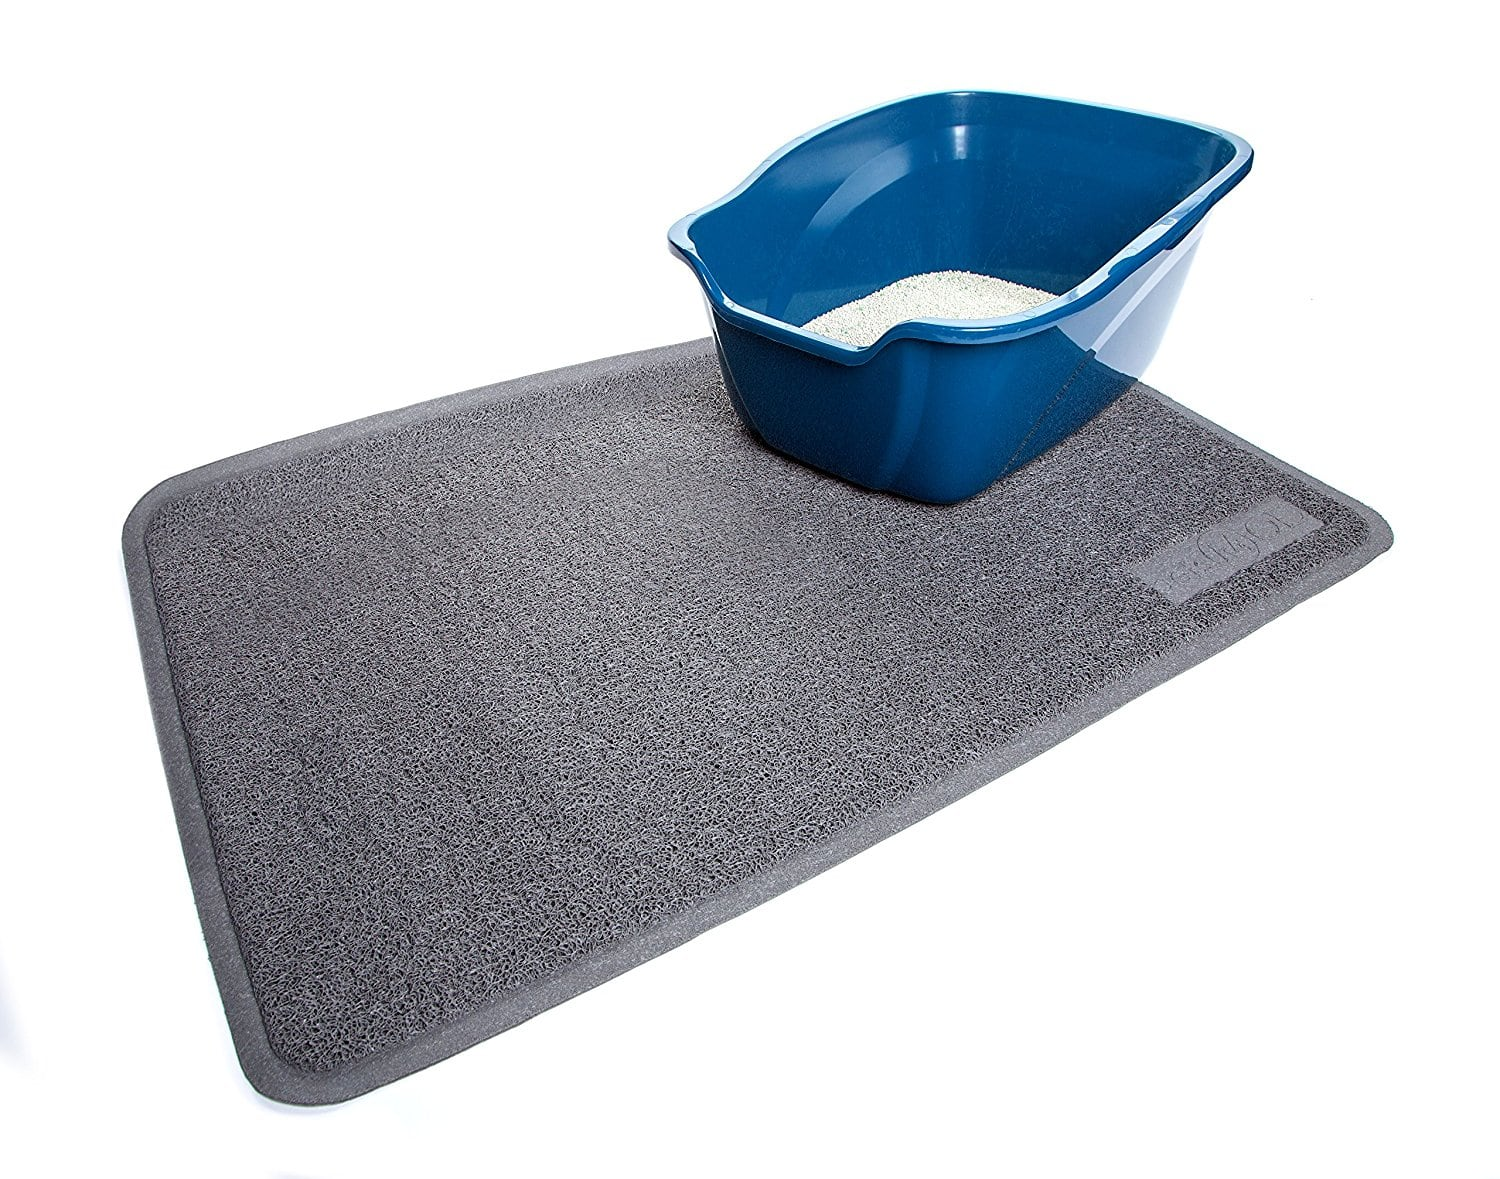 7 Cat Litter Mats To Buy The Ones That Actually Work